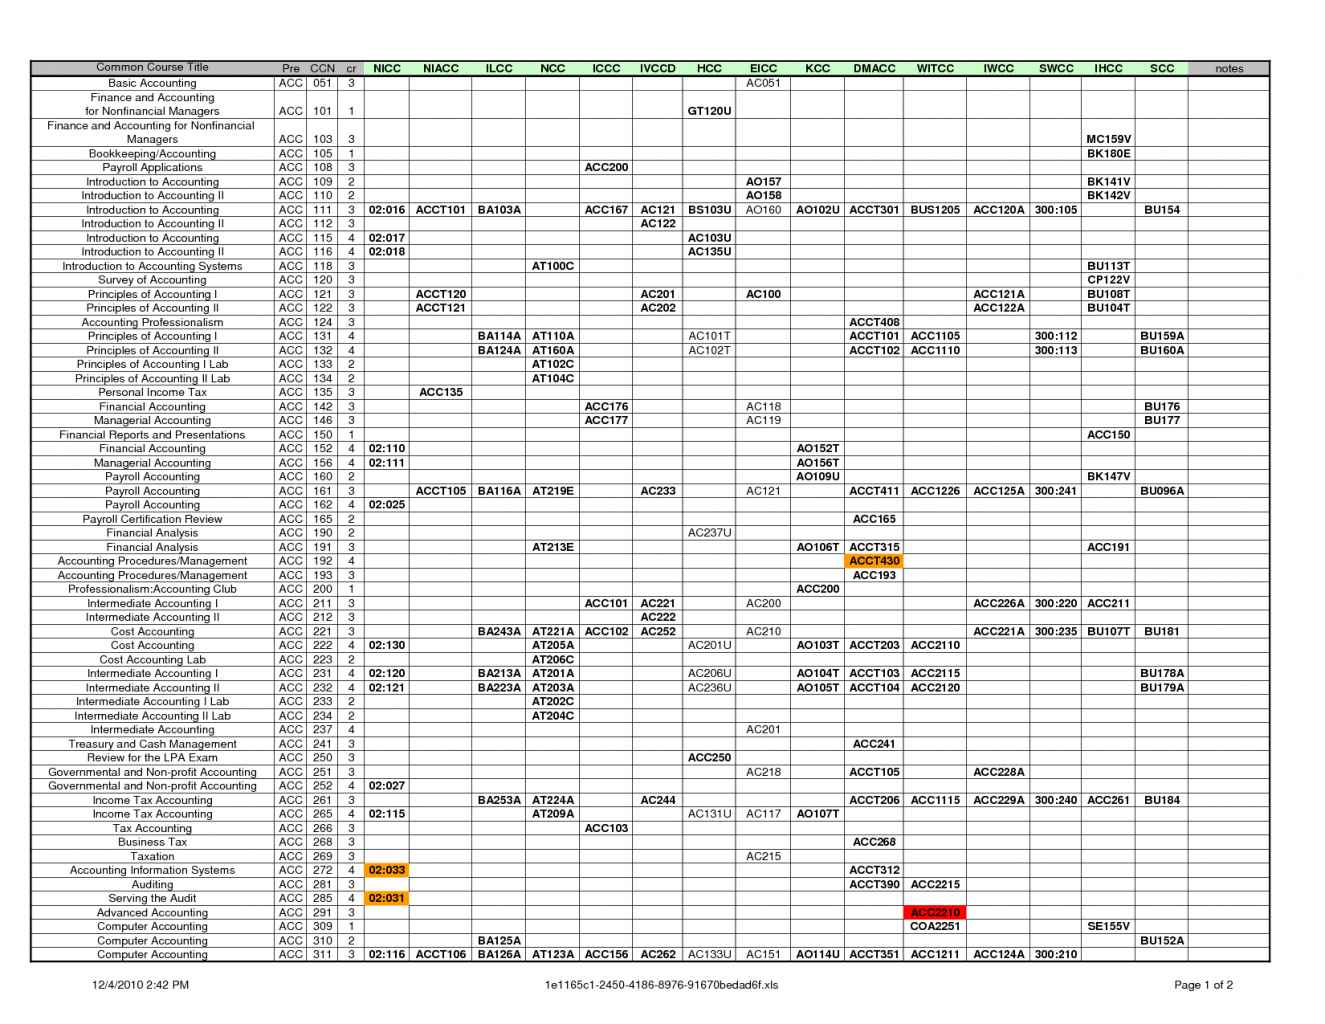 small business tax spreadsheet